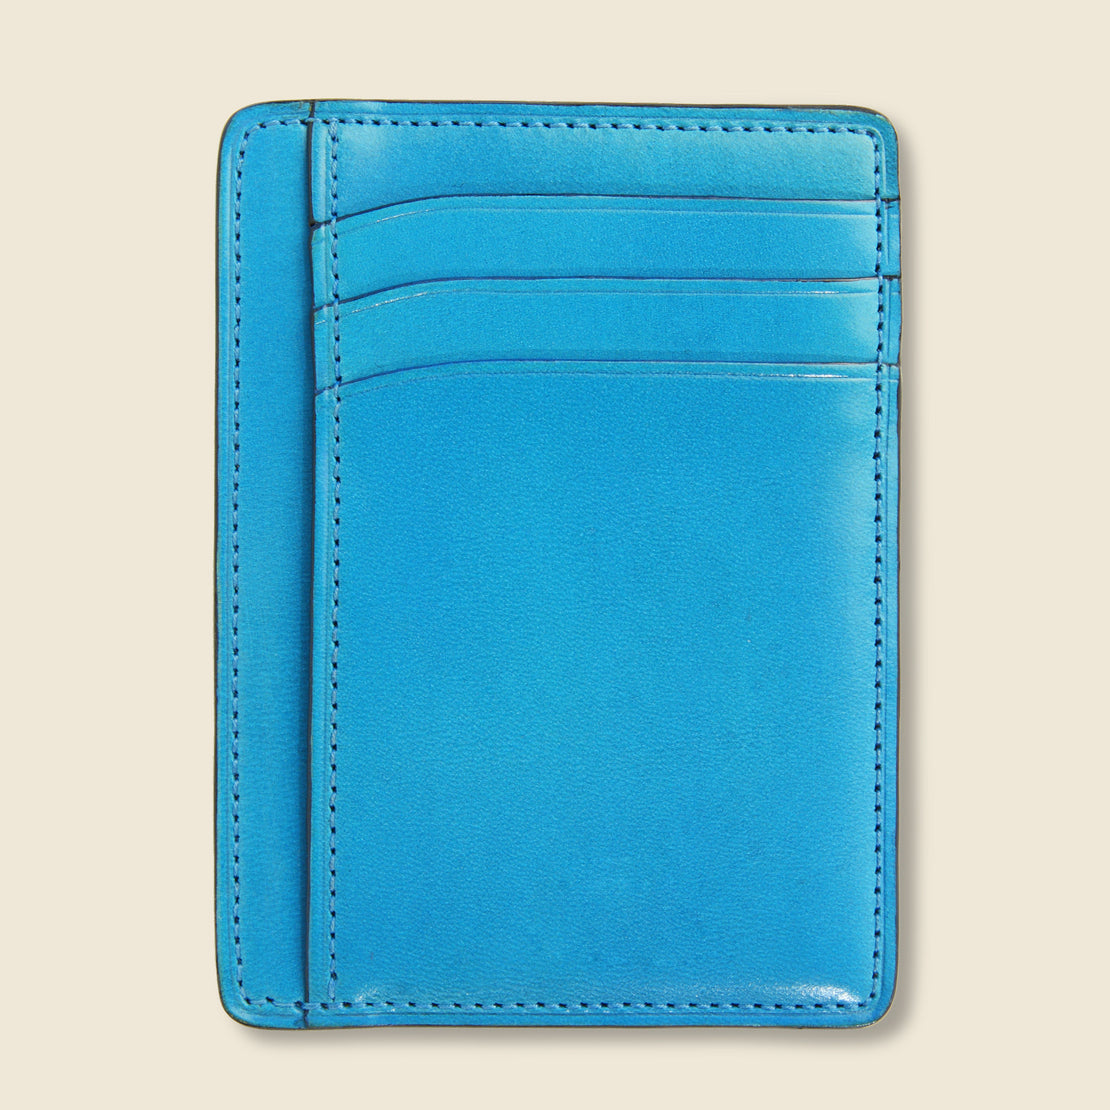 Card and Document Case - Cadet Blue - Il Bussetto - STAG Provisions - Accessories - Wallets